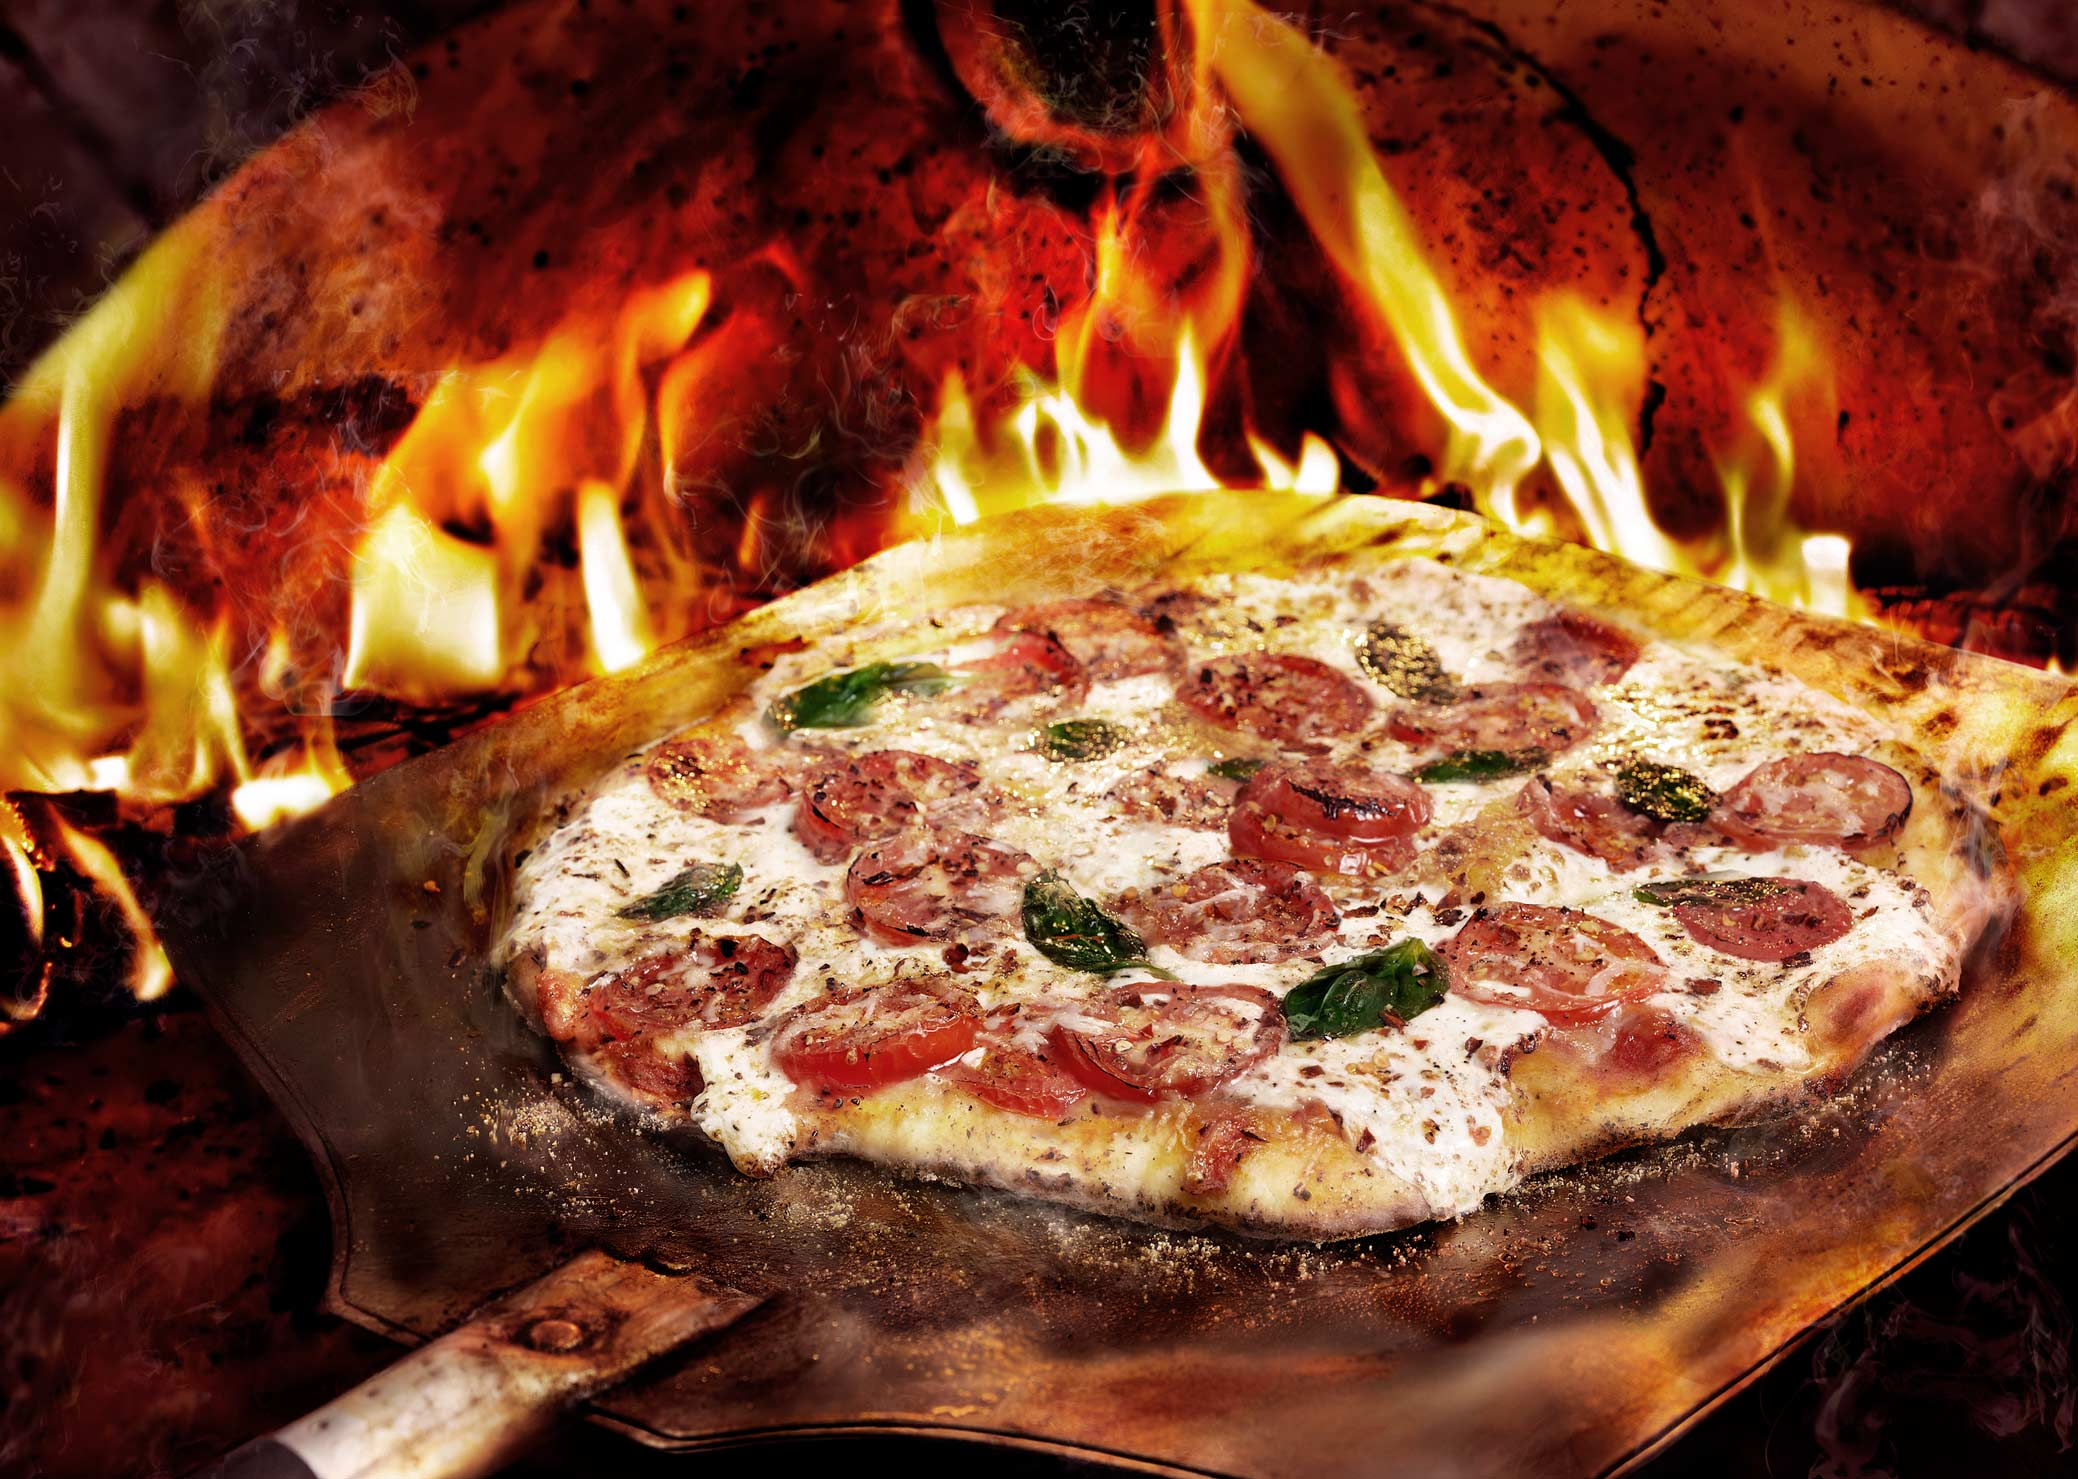 Glasshouse Assignment - David Bishop - Food Photography - Brick Oven Pizza